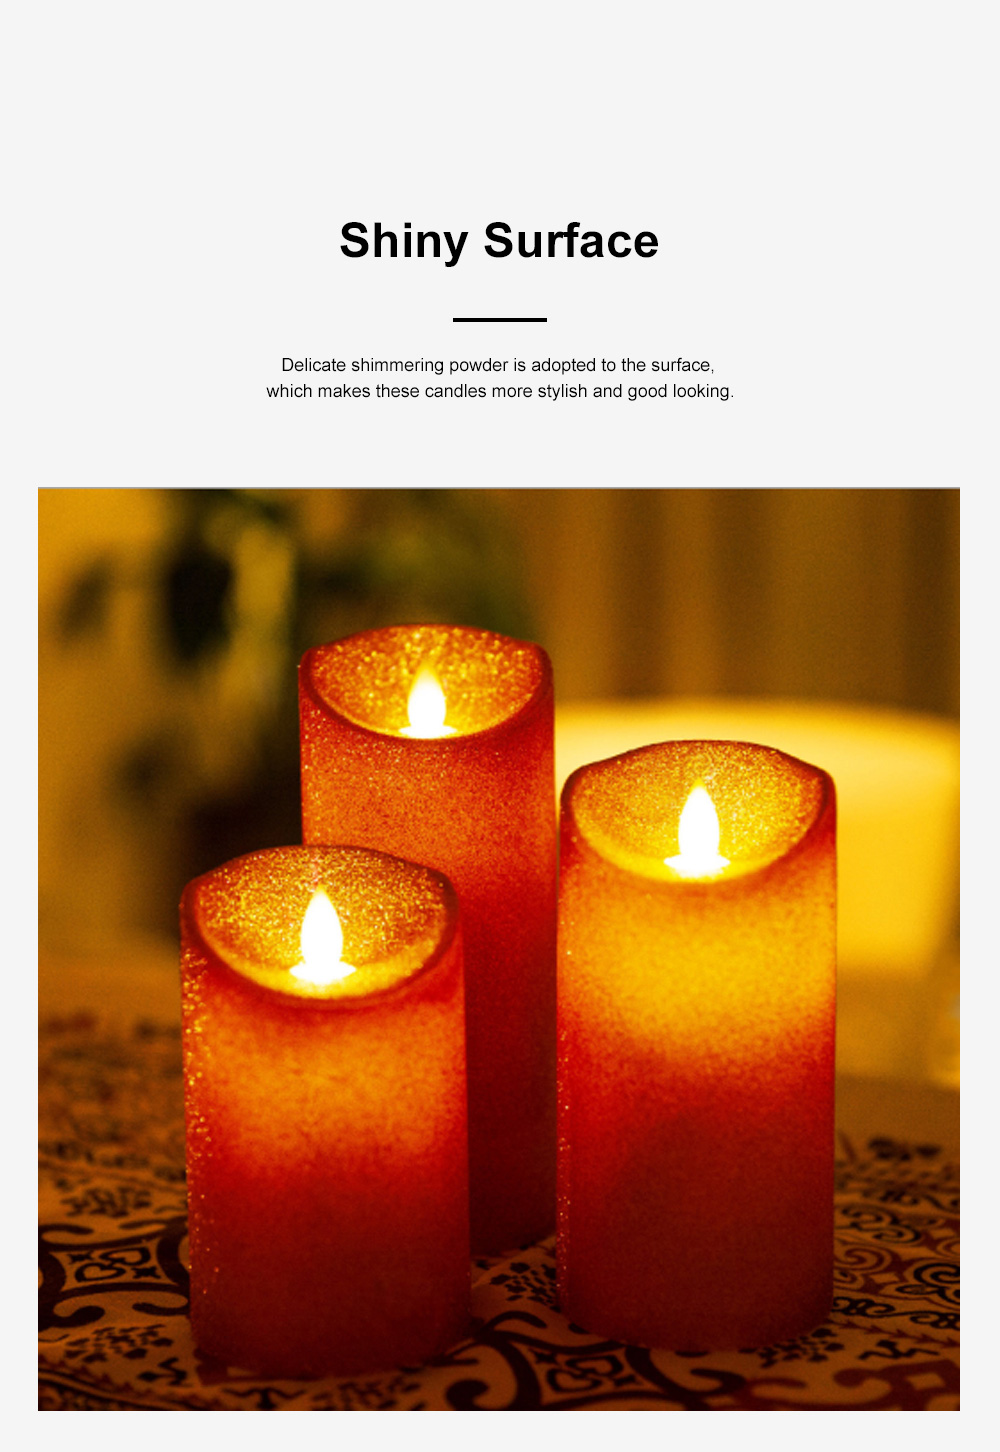 3PCS Led Candle Light Suit Rose Golden Simulation Flame Smokeless Electric Candle Lights with Remote Control Adjustable Automatic Timer 3